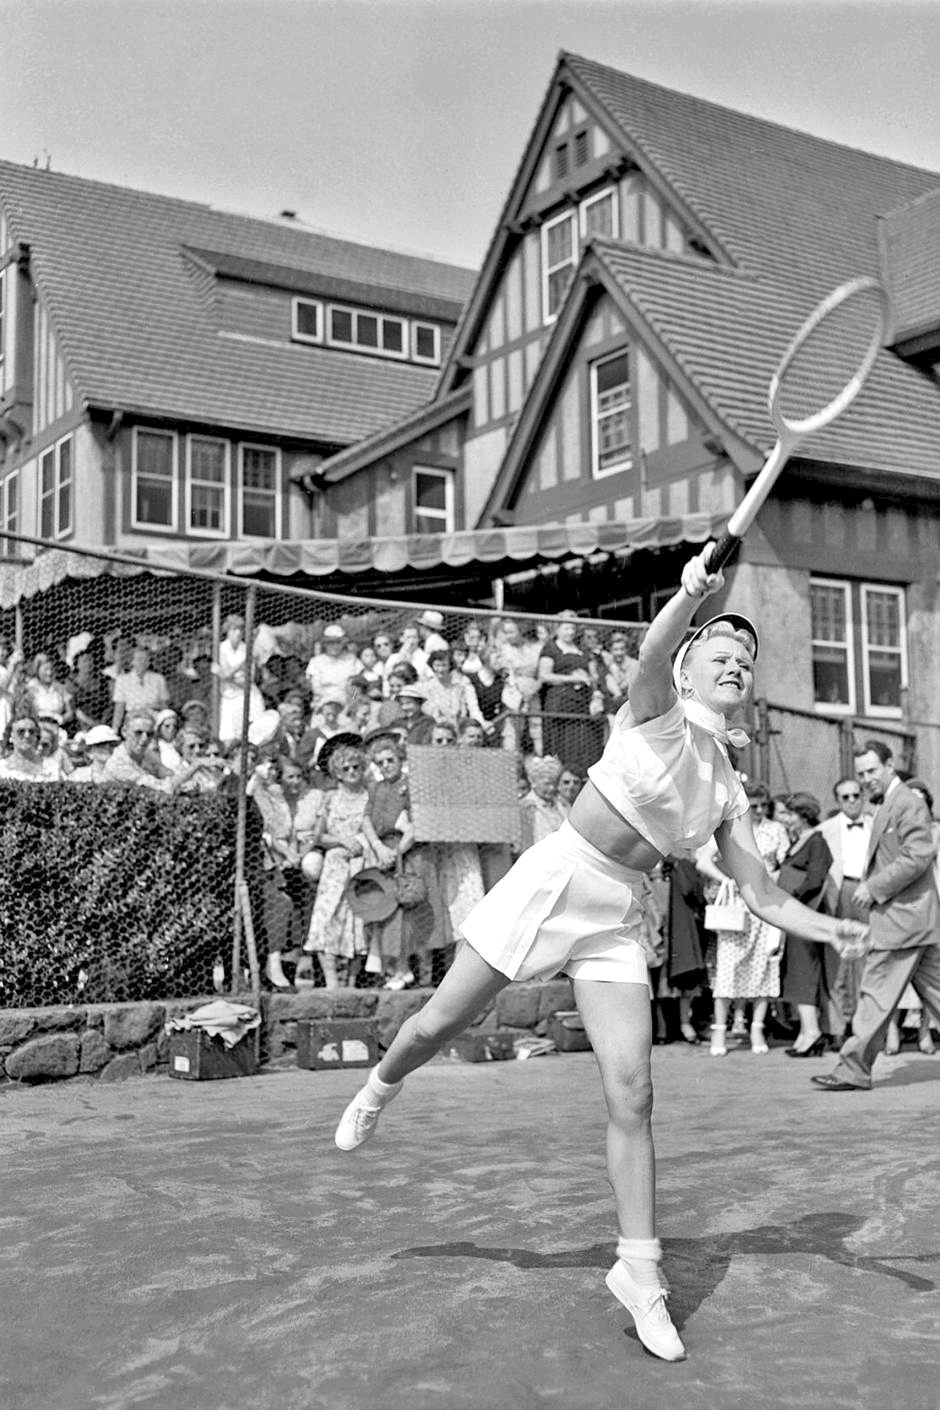 Ginger+Rogers+swung+for+the+fences+in+her+fashion-forward+tennis+whites+and+scarf+in+1950.jpg